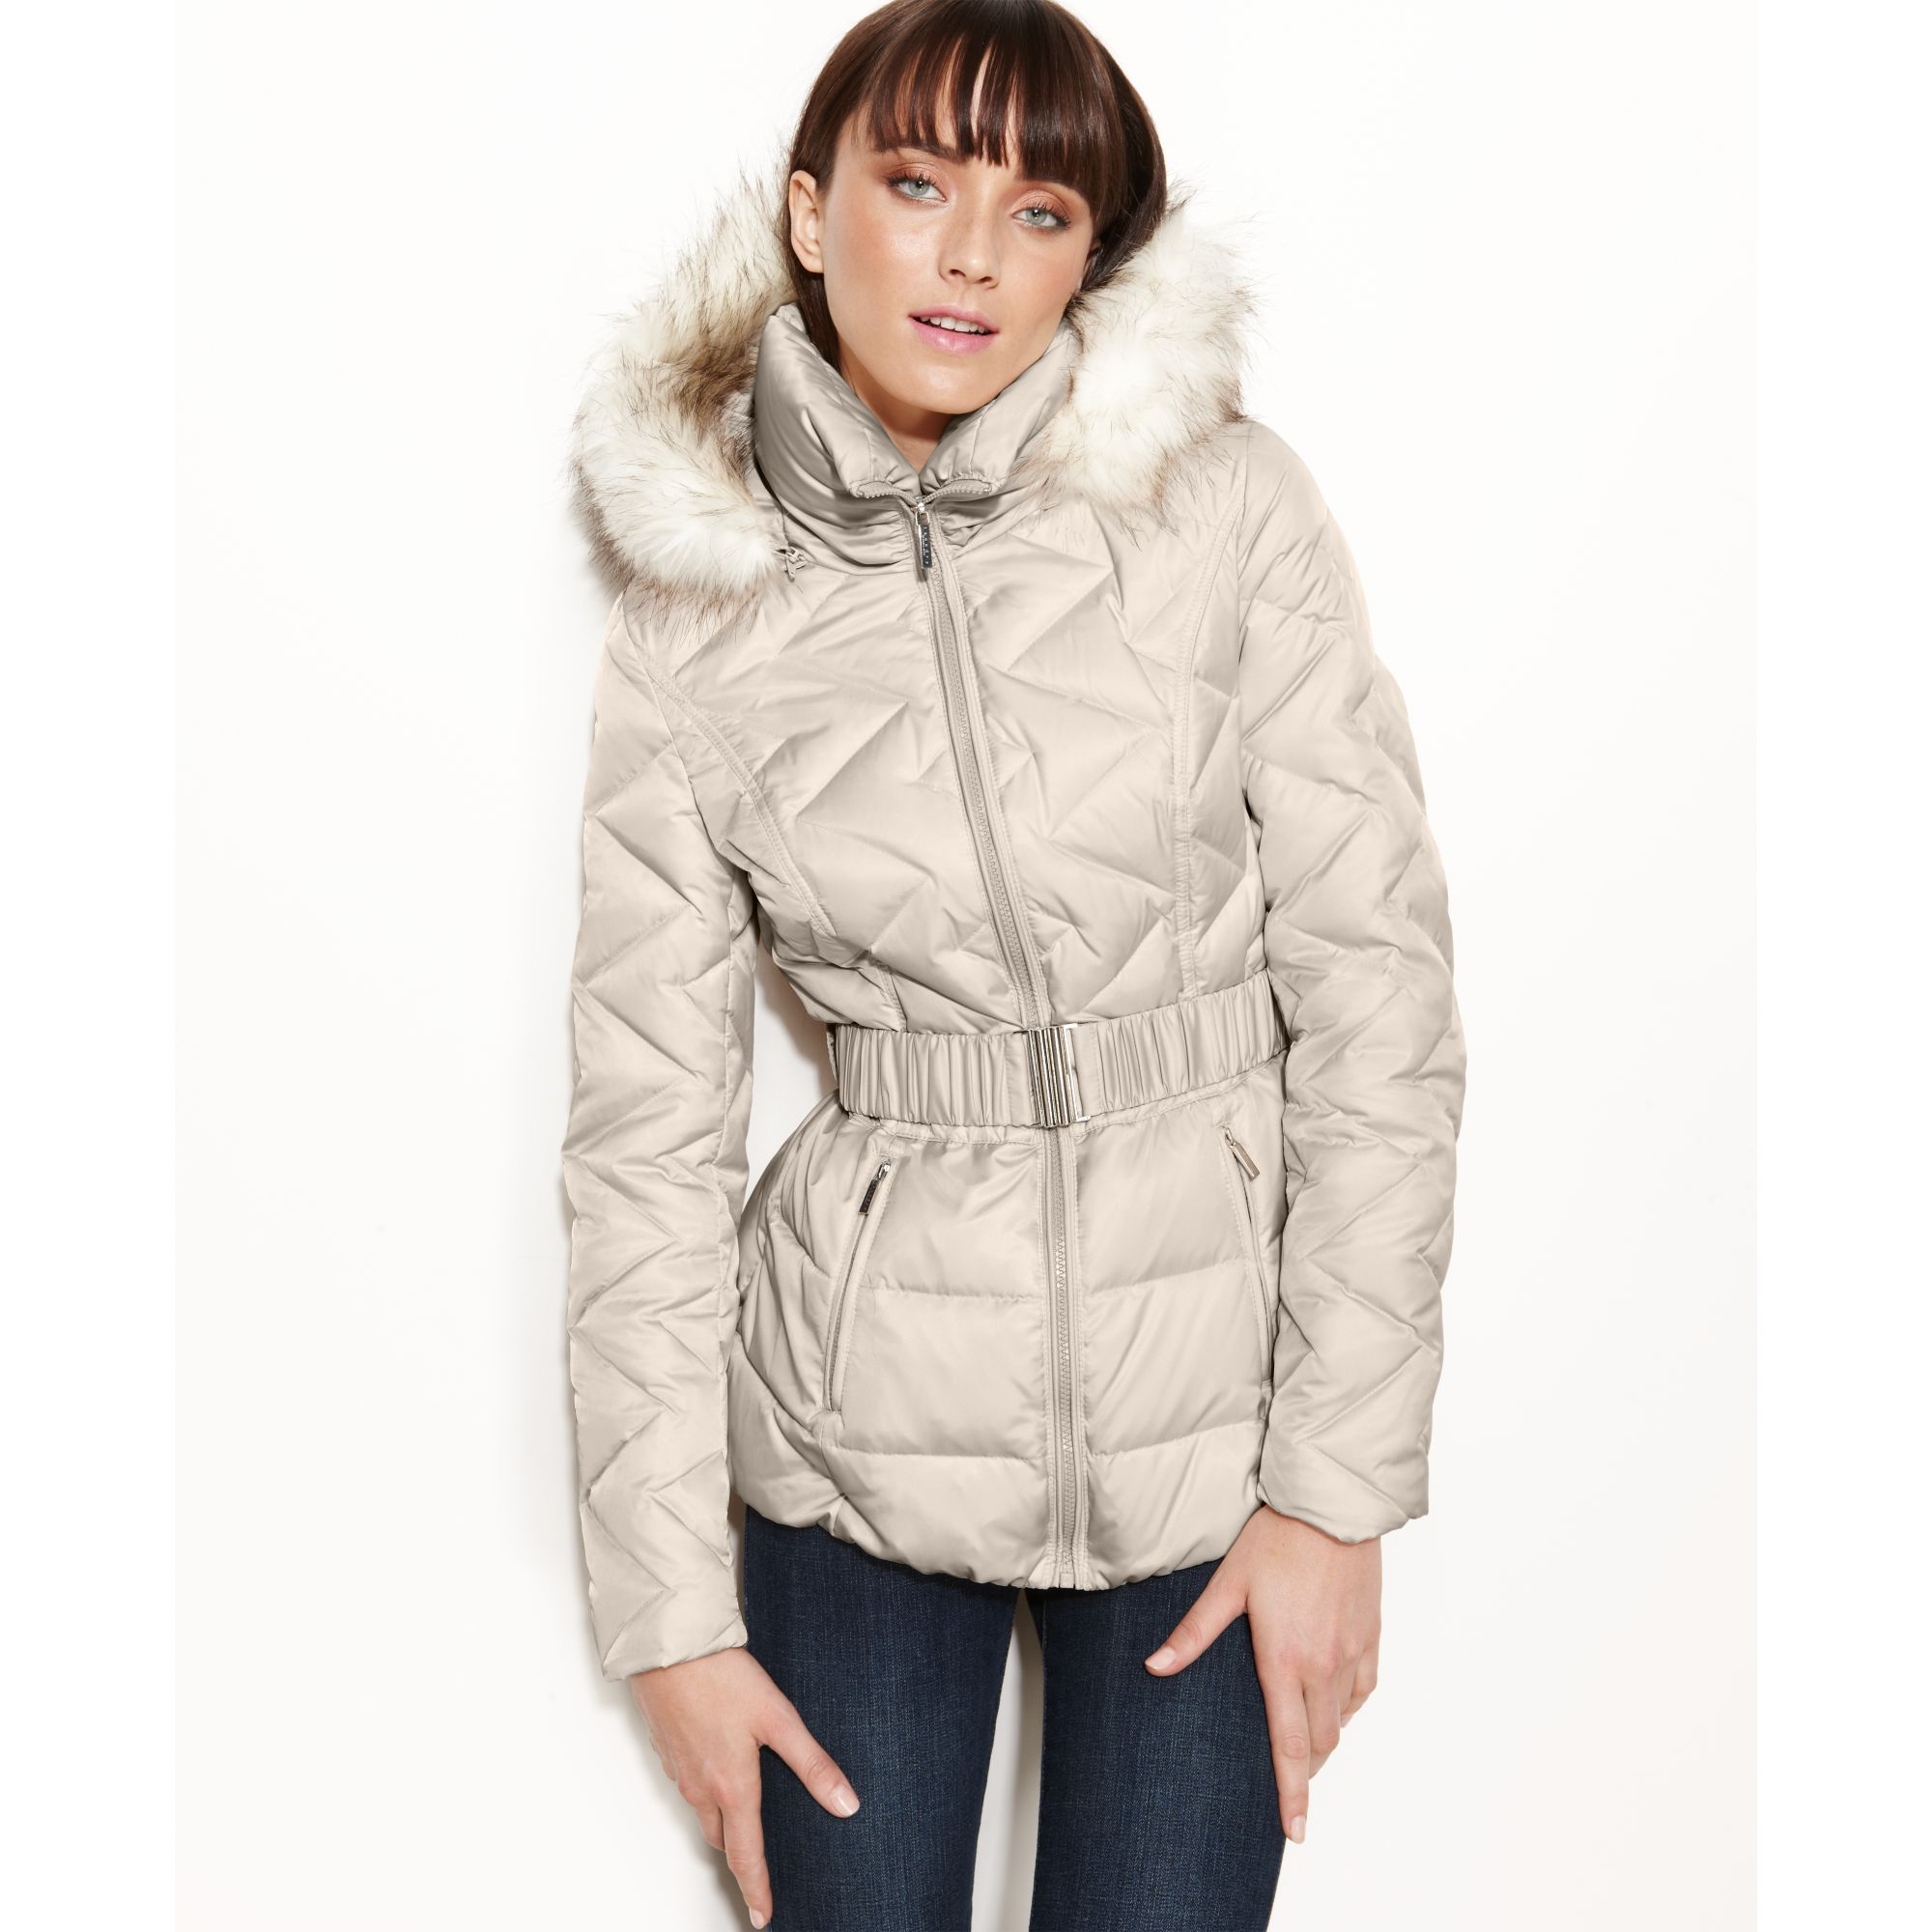 Laundry by shelli segal Faux fur trim Hooded Puffer Parka in White ...